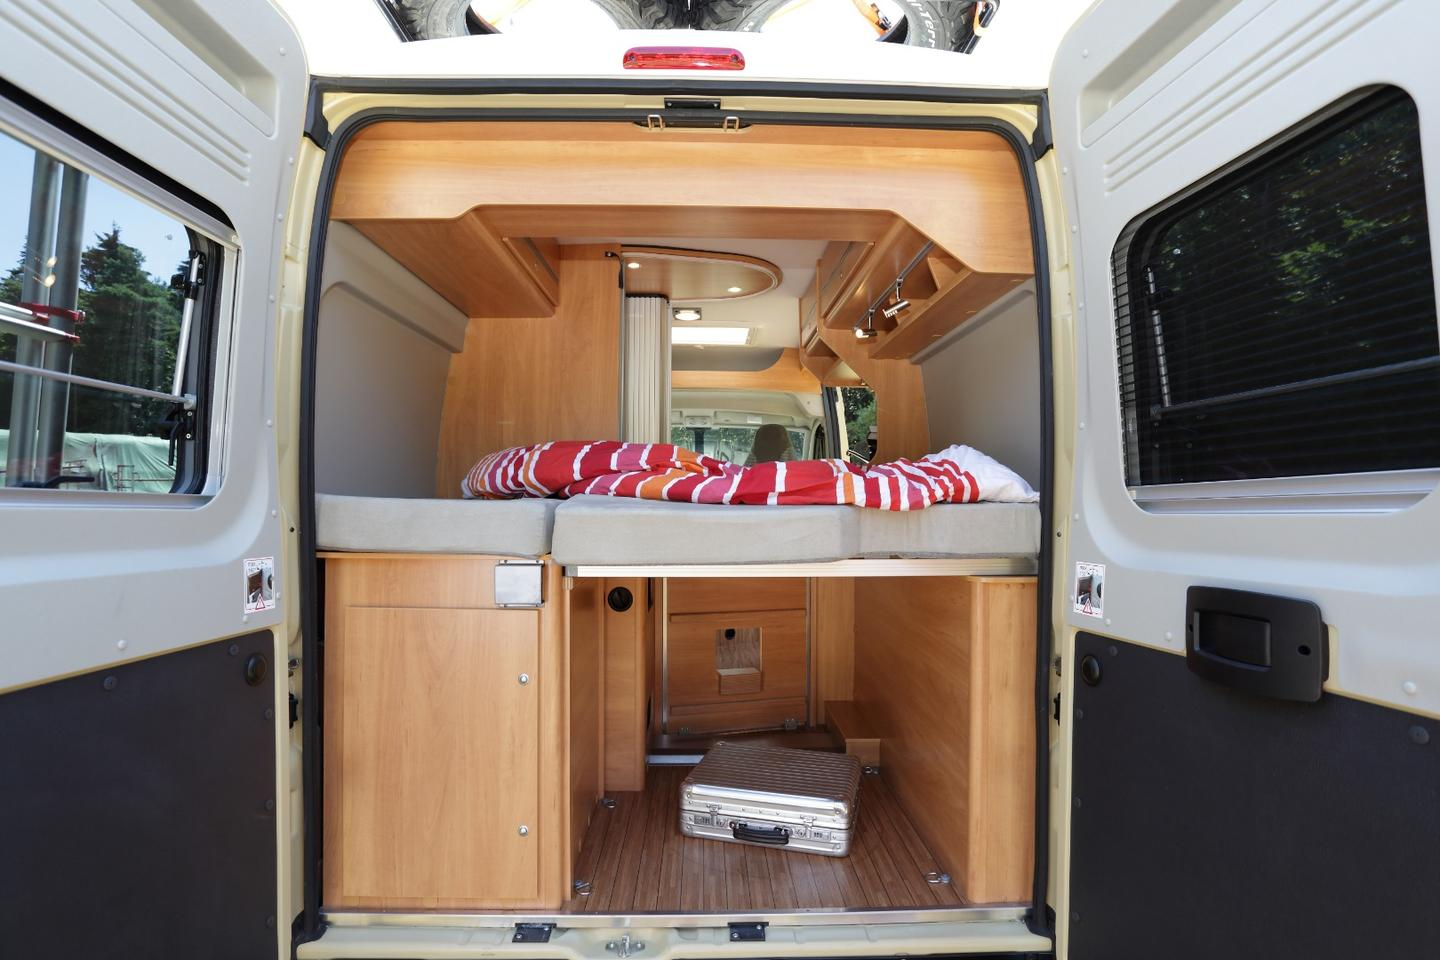 Citroën gives van life some retro flavor with the Type H WildCamp